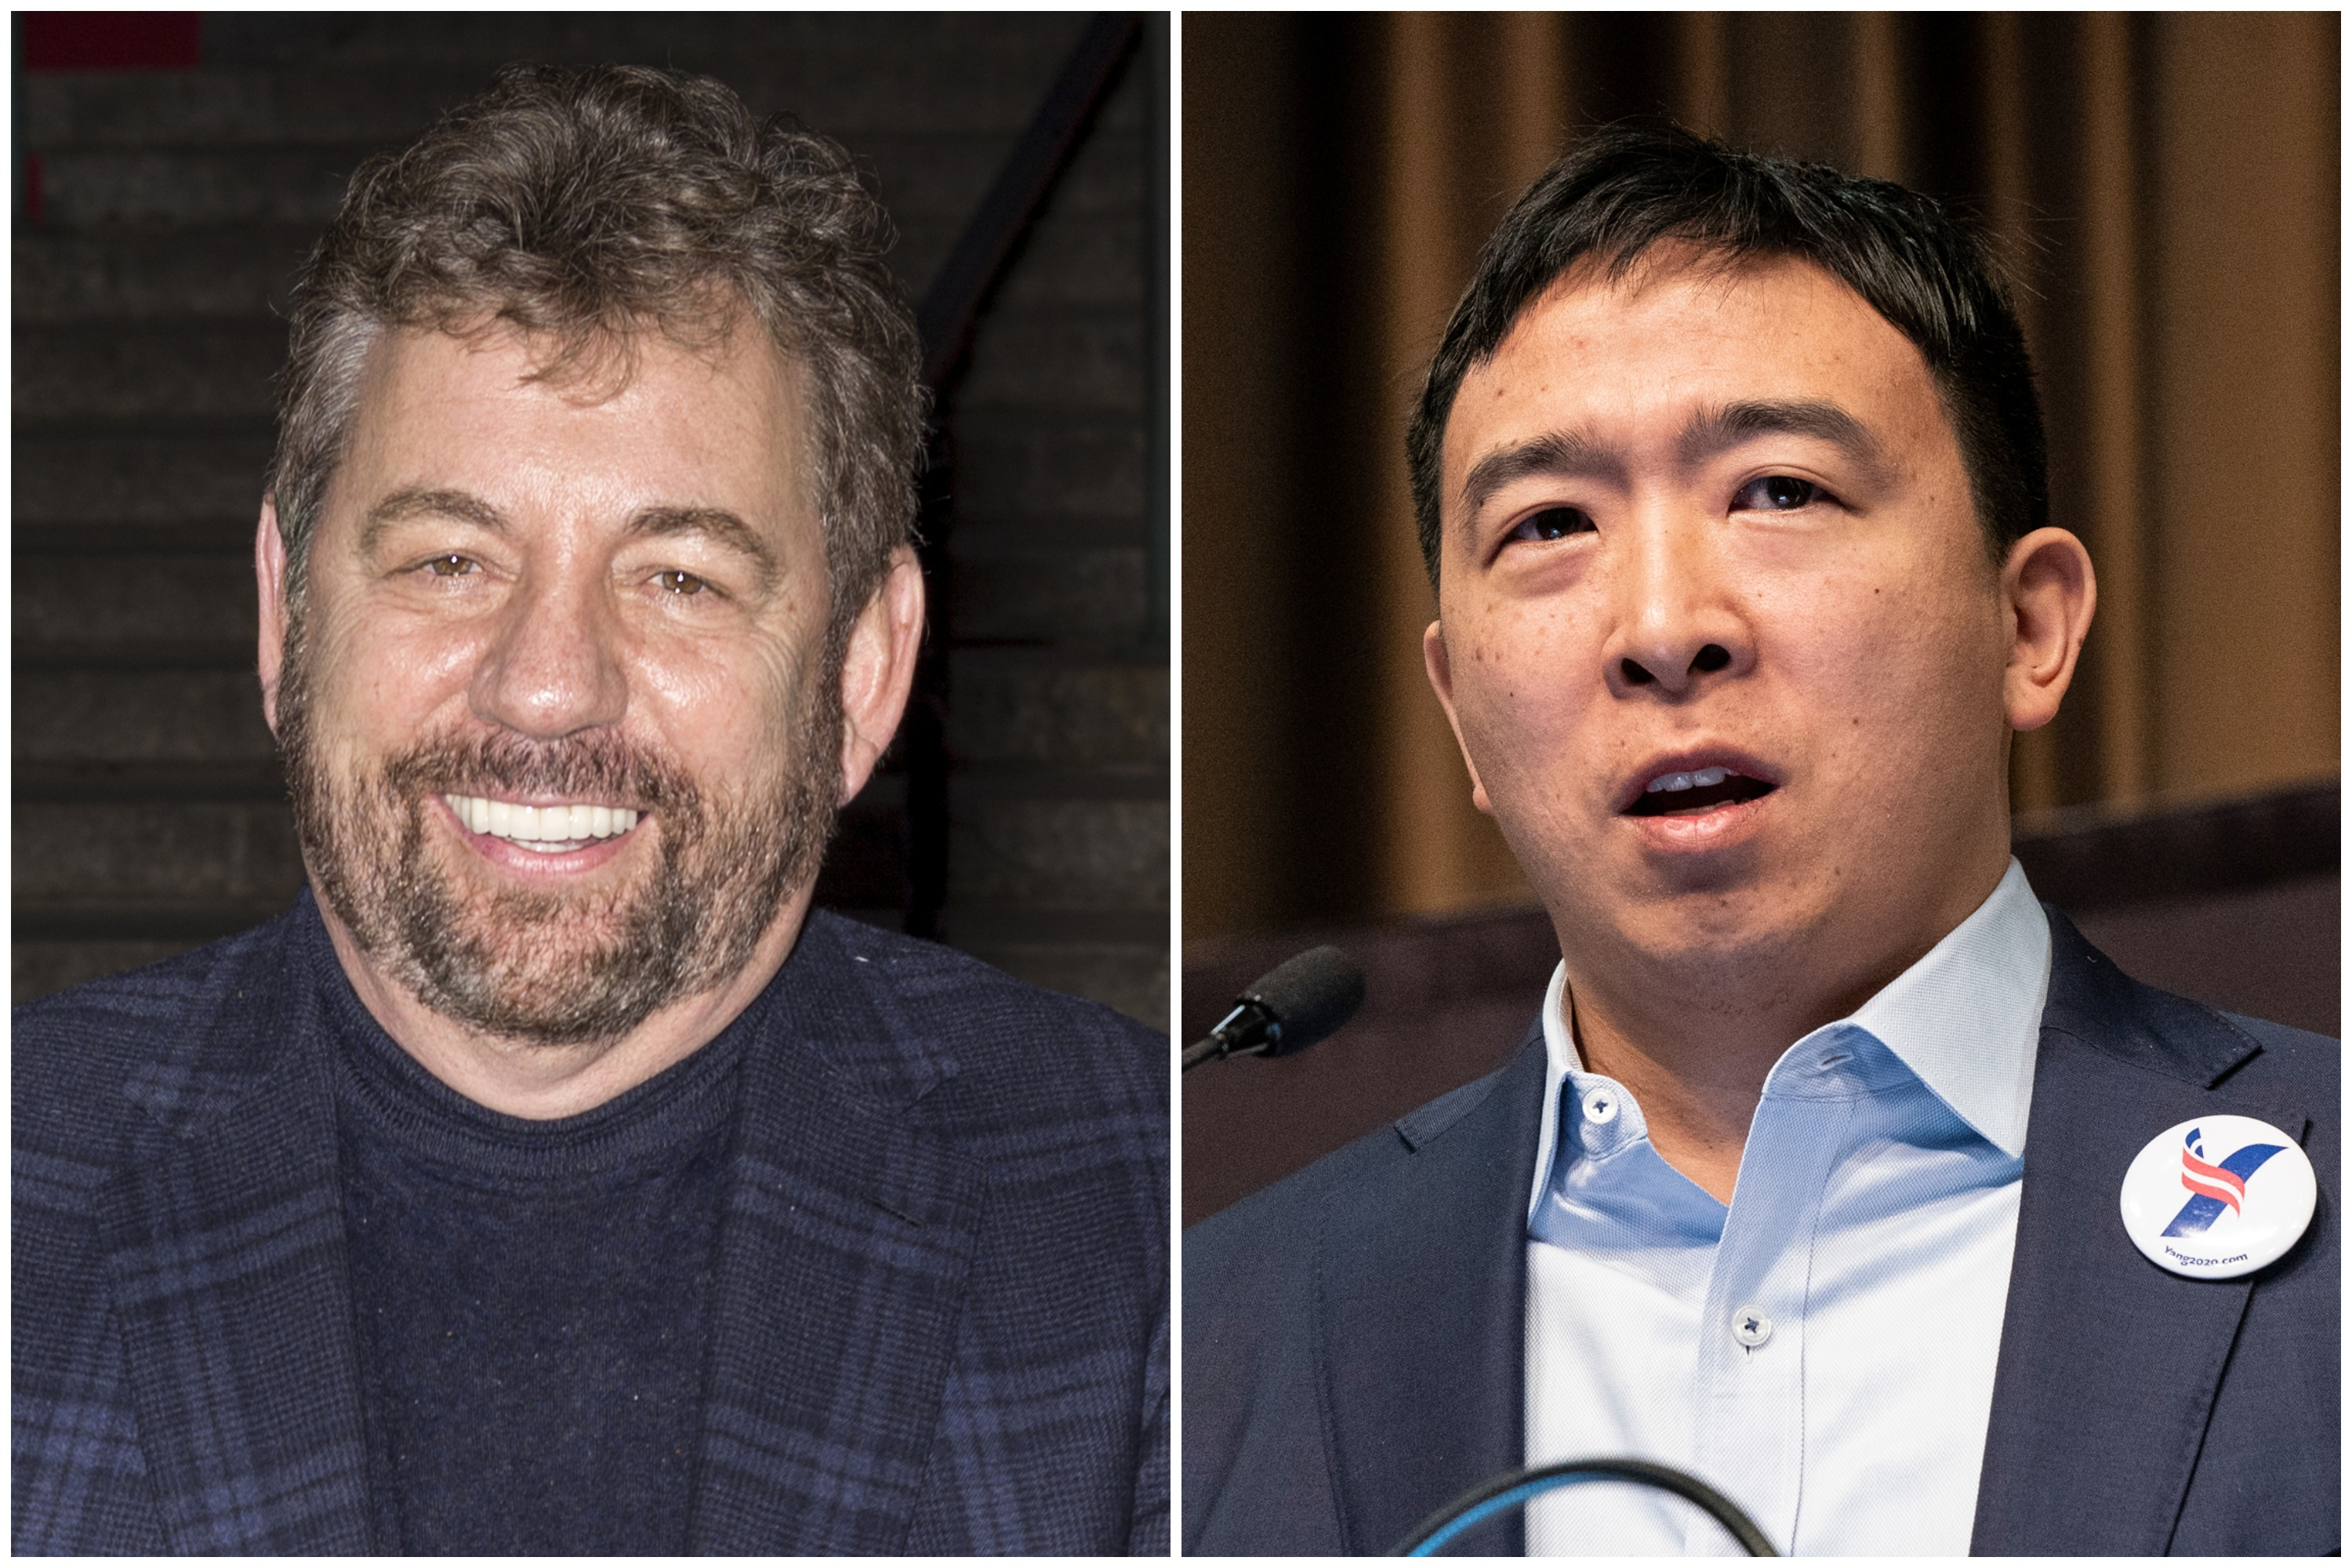 Knicks owner James Dolan and New York City mayoral candidate Andrew Yang.